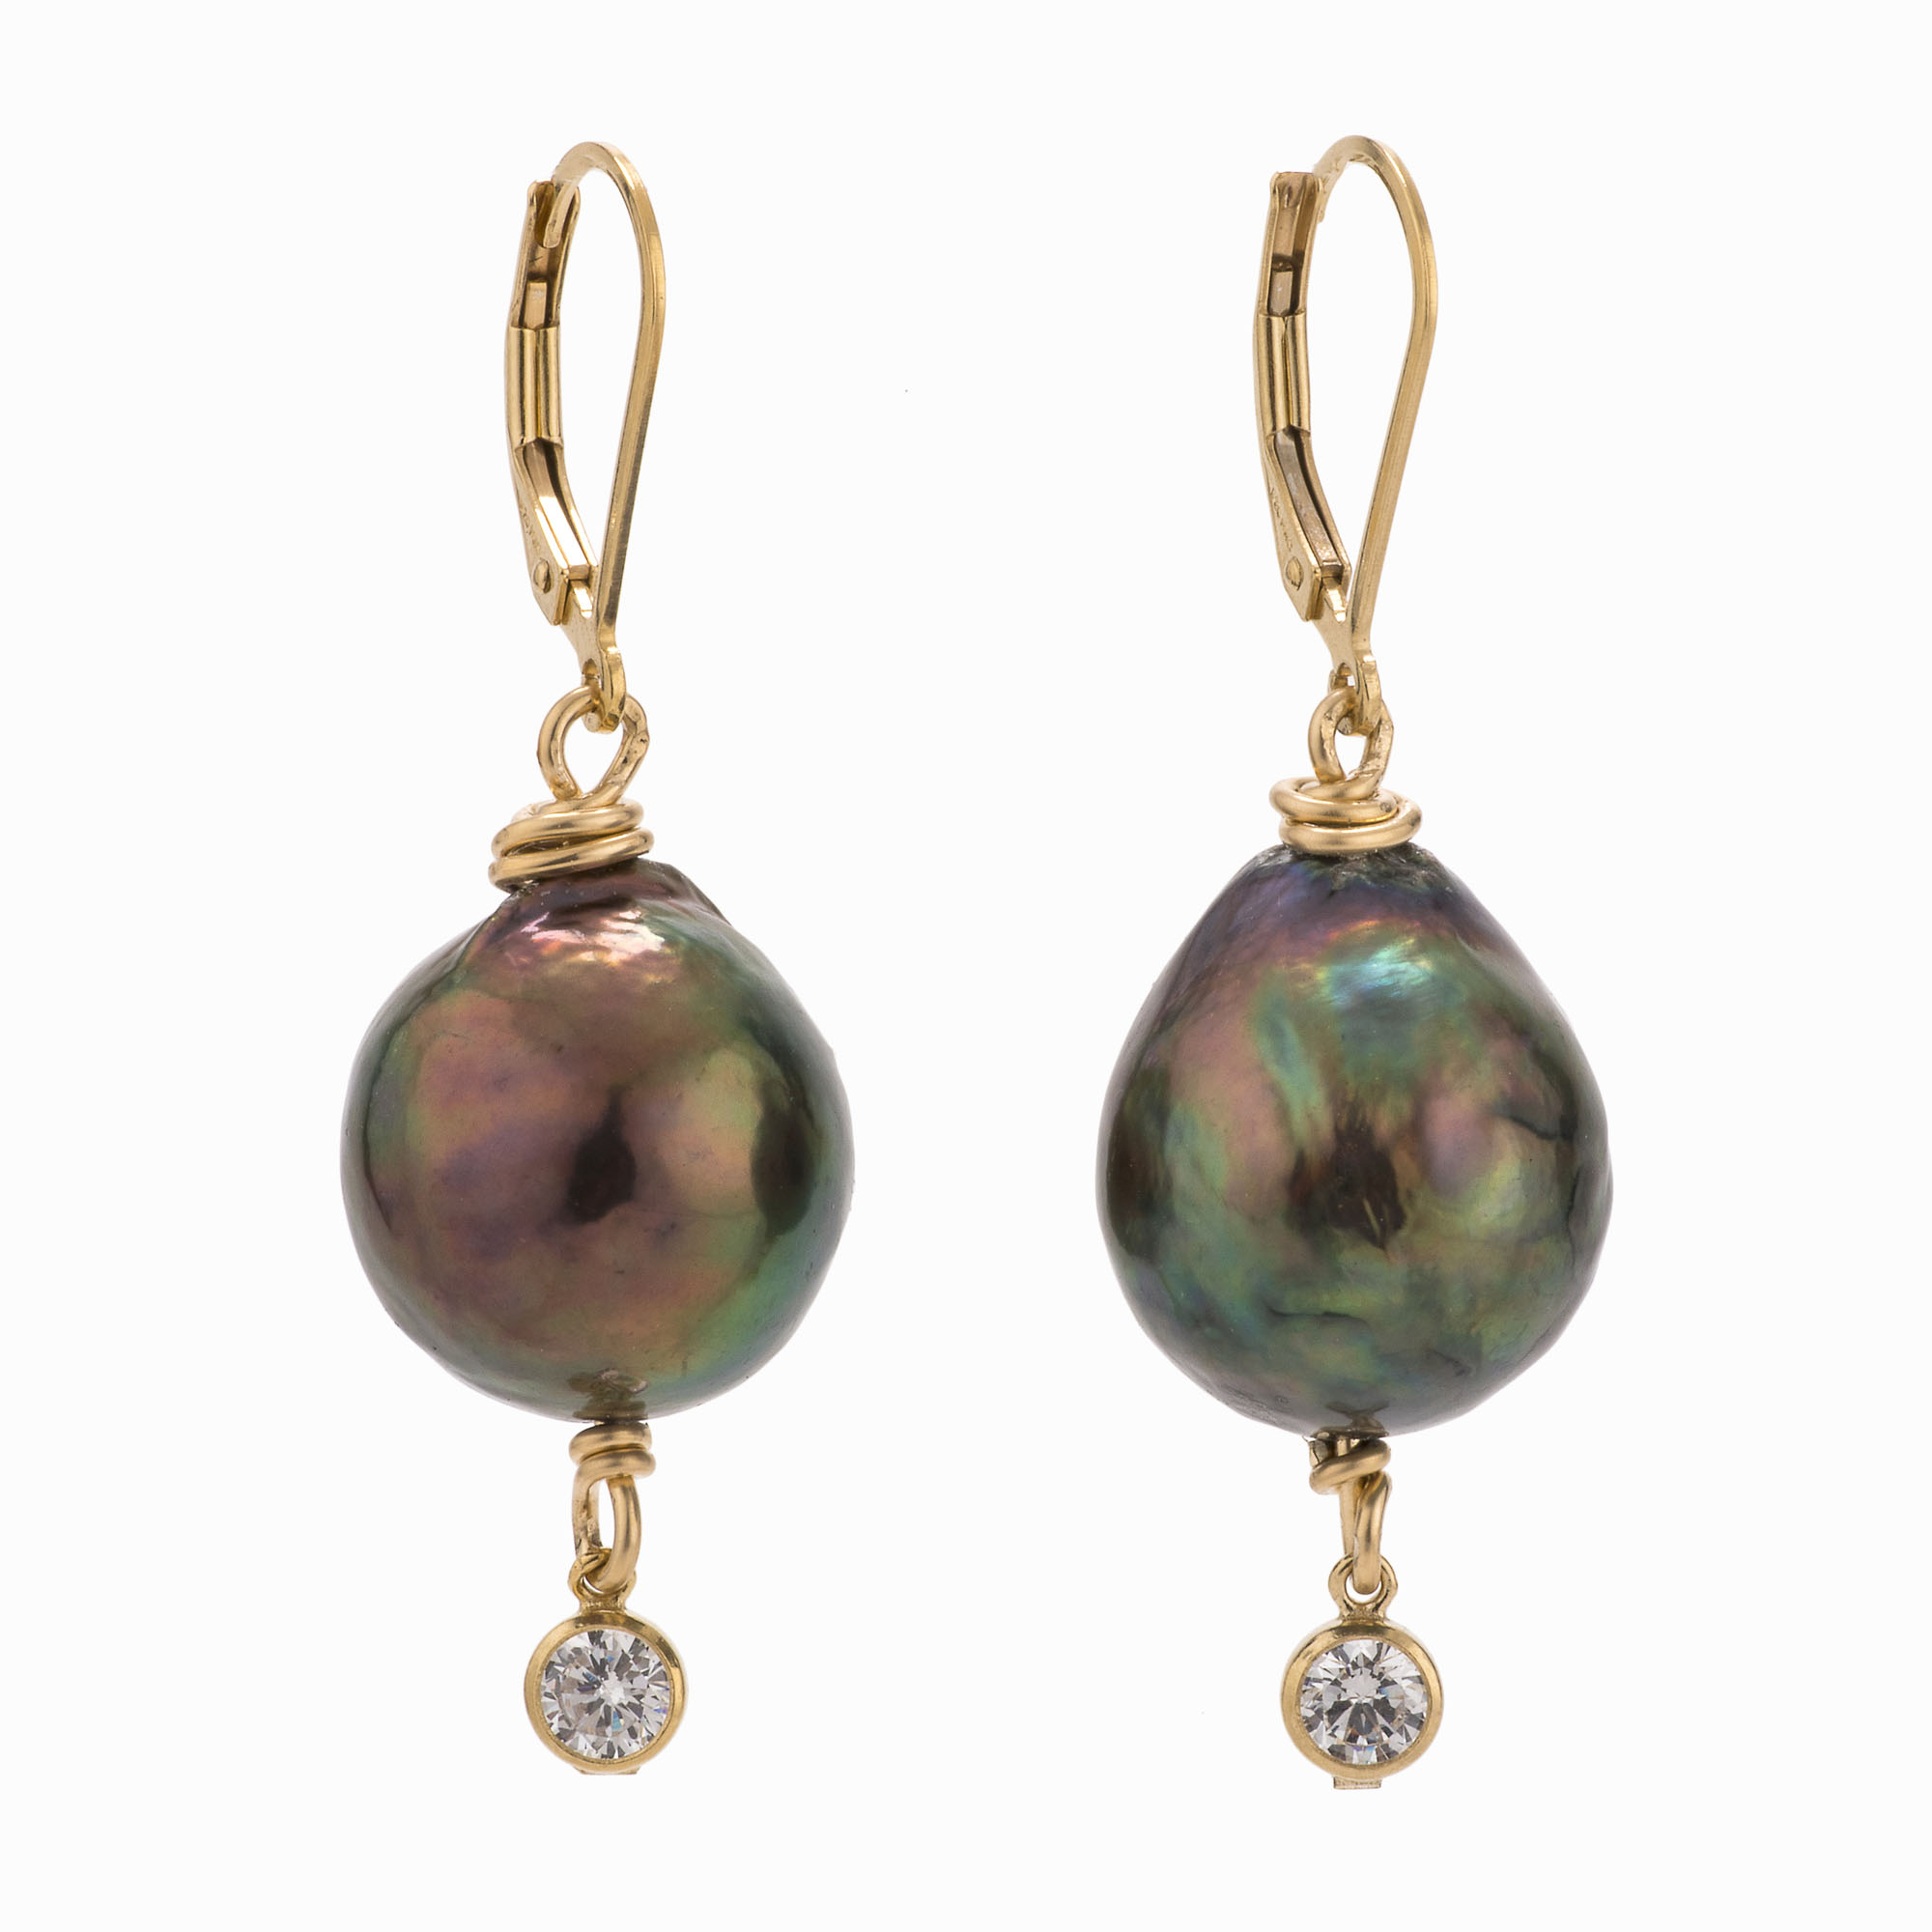 A pair of black fresh water pearl earrings with 14k gold-filled backs and crystal drops.